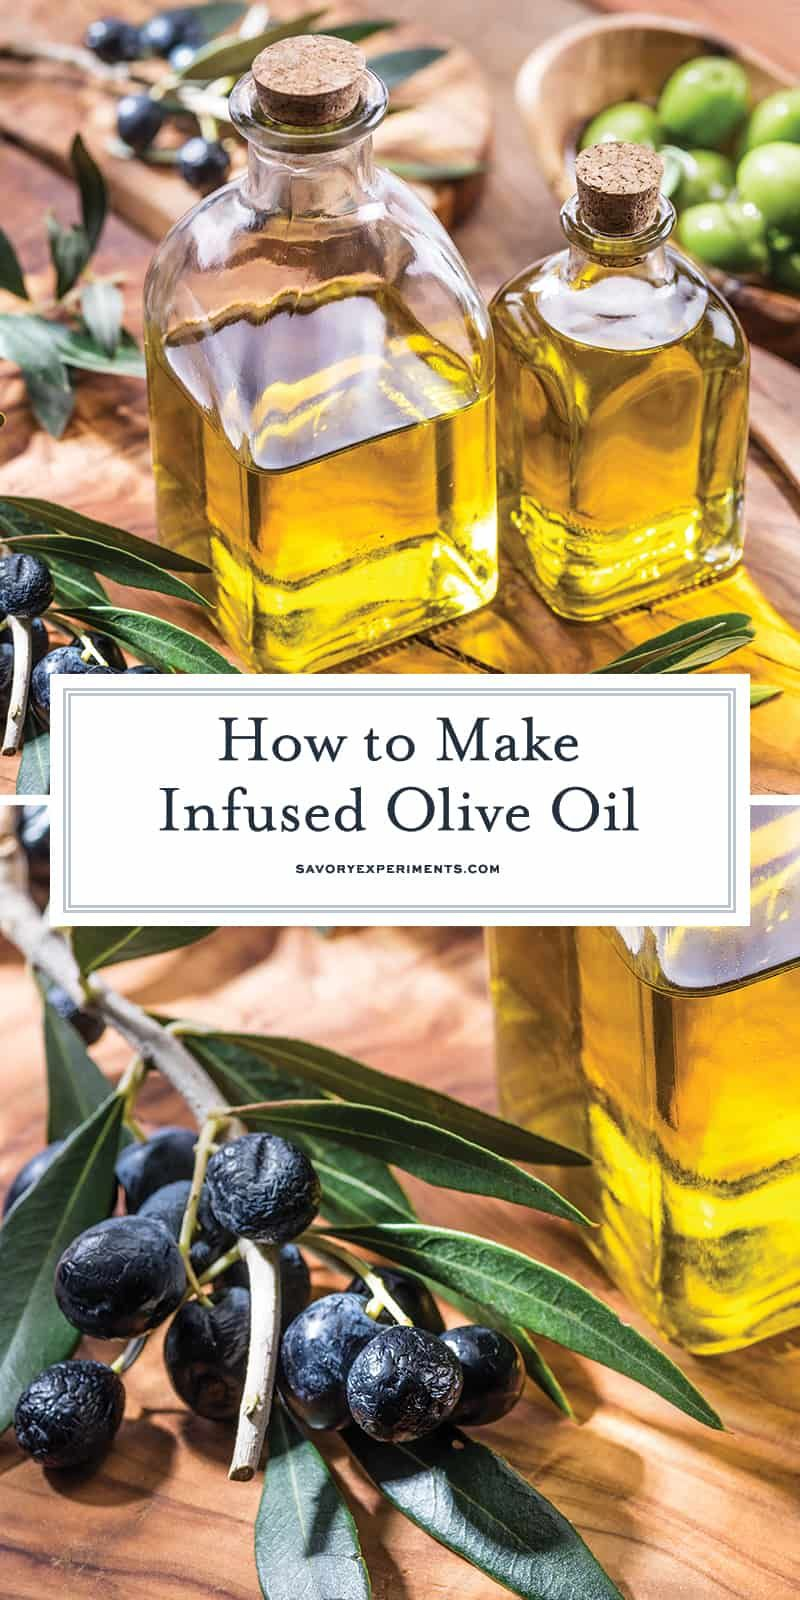 How to Make Infused Olive Oil Flavored oils, Infused